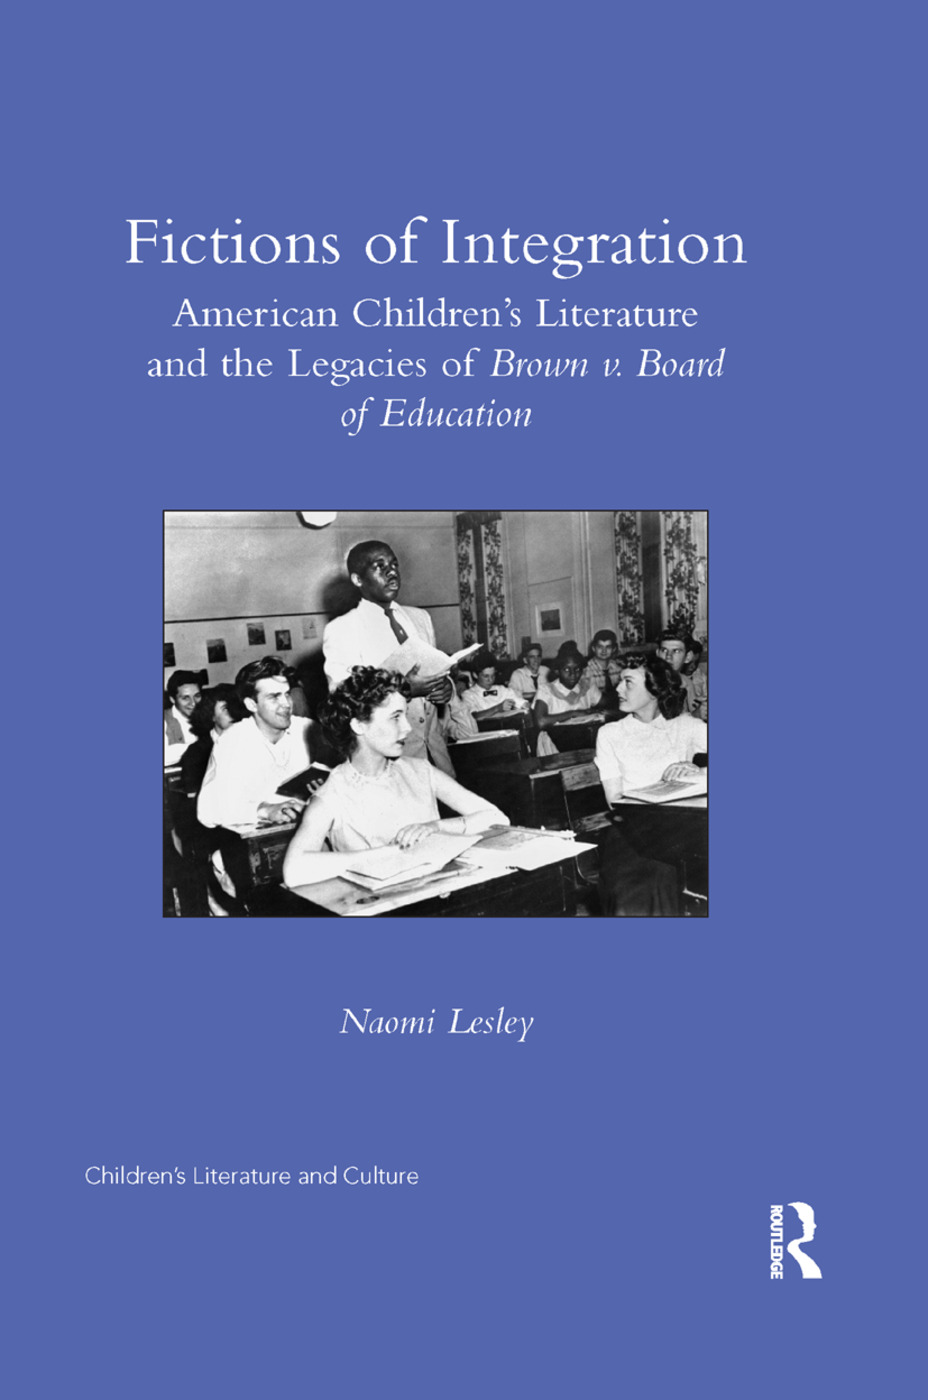 Fictions of Integration: American Children's Literature and the Legacies of Brown v. Board of Education book cover